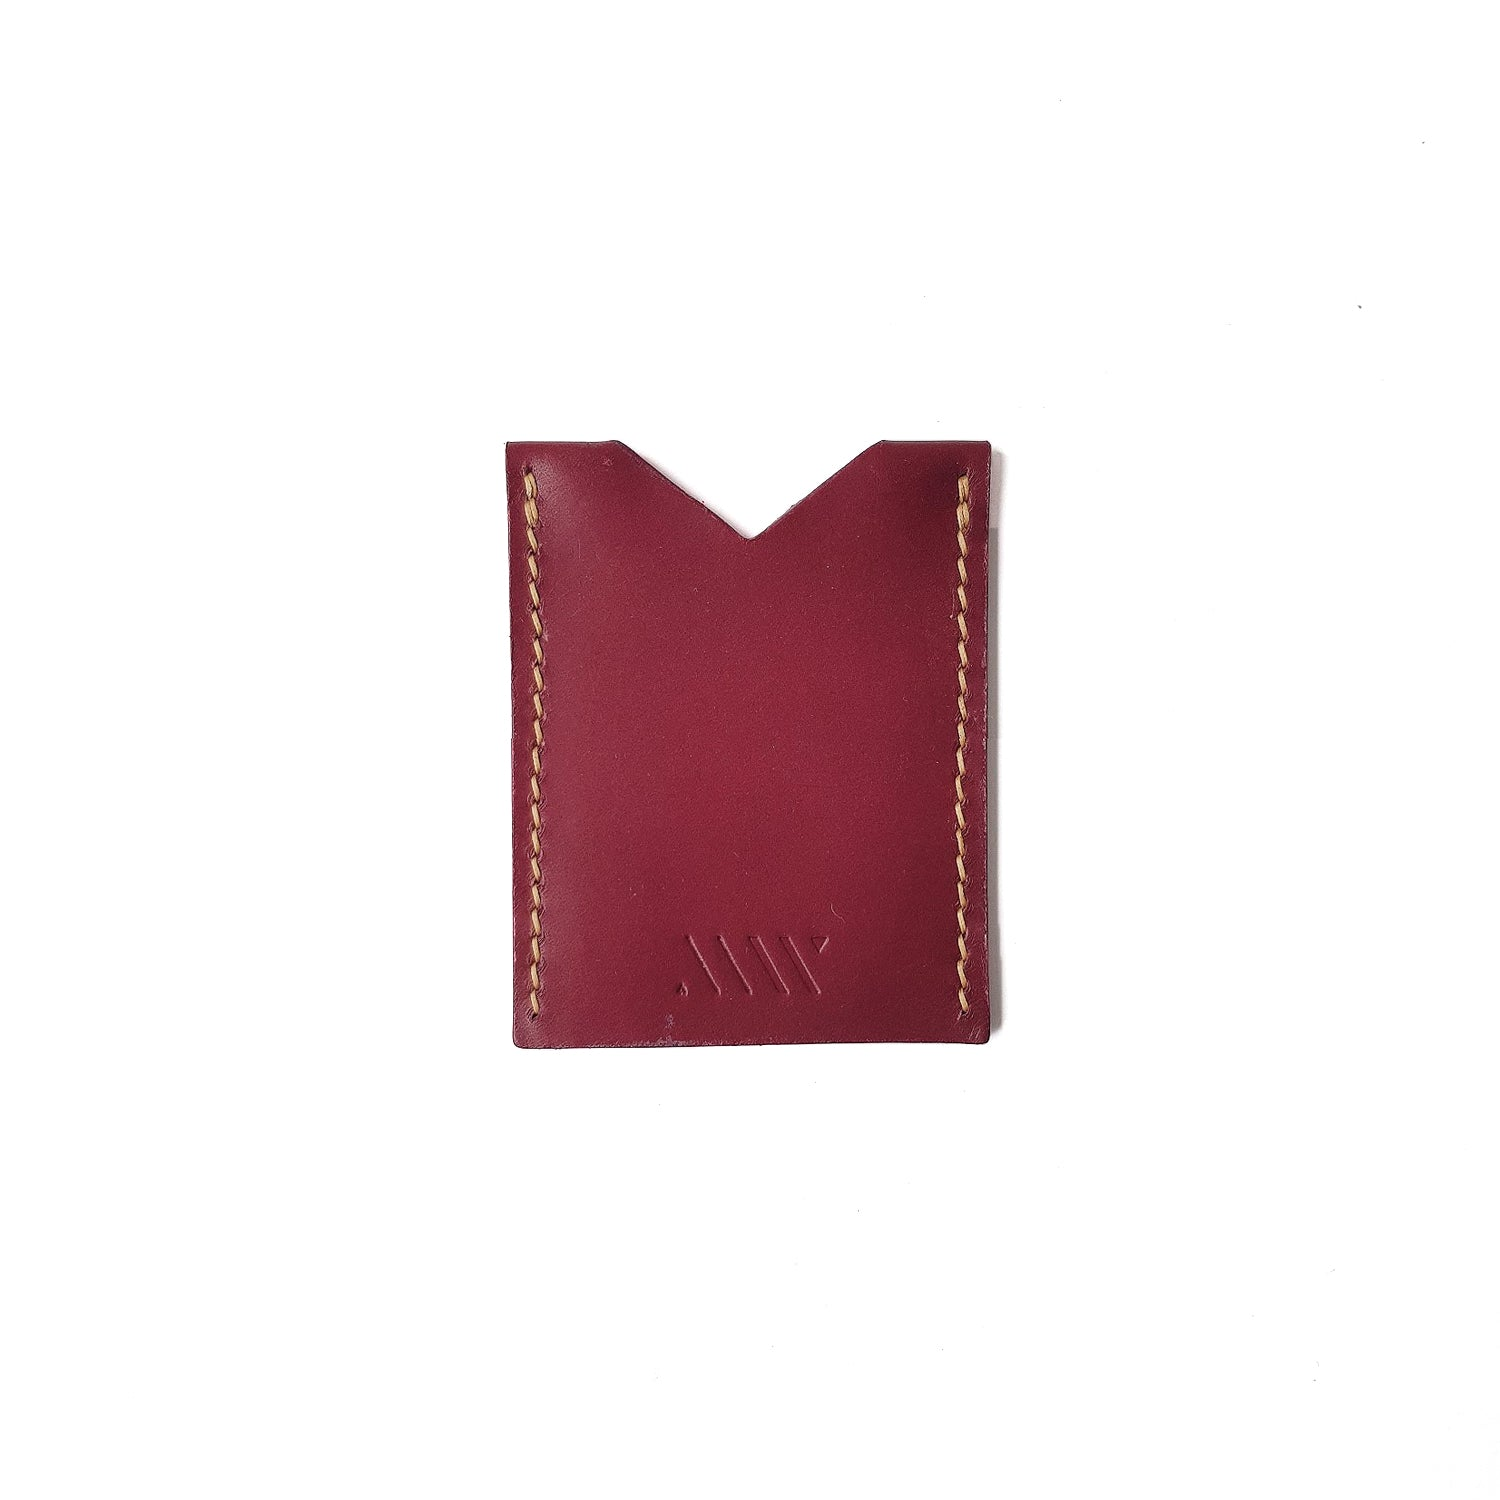 Slim Cardholder in Wine